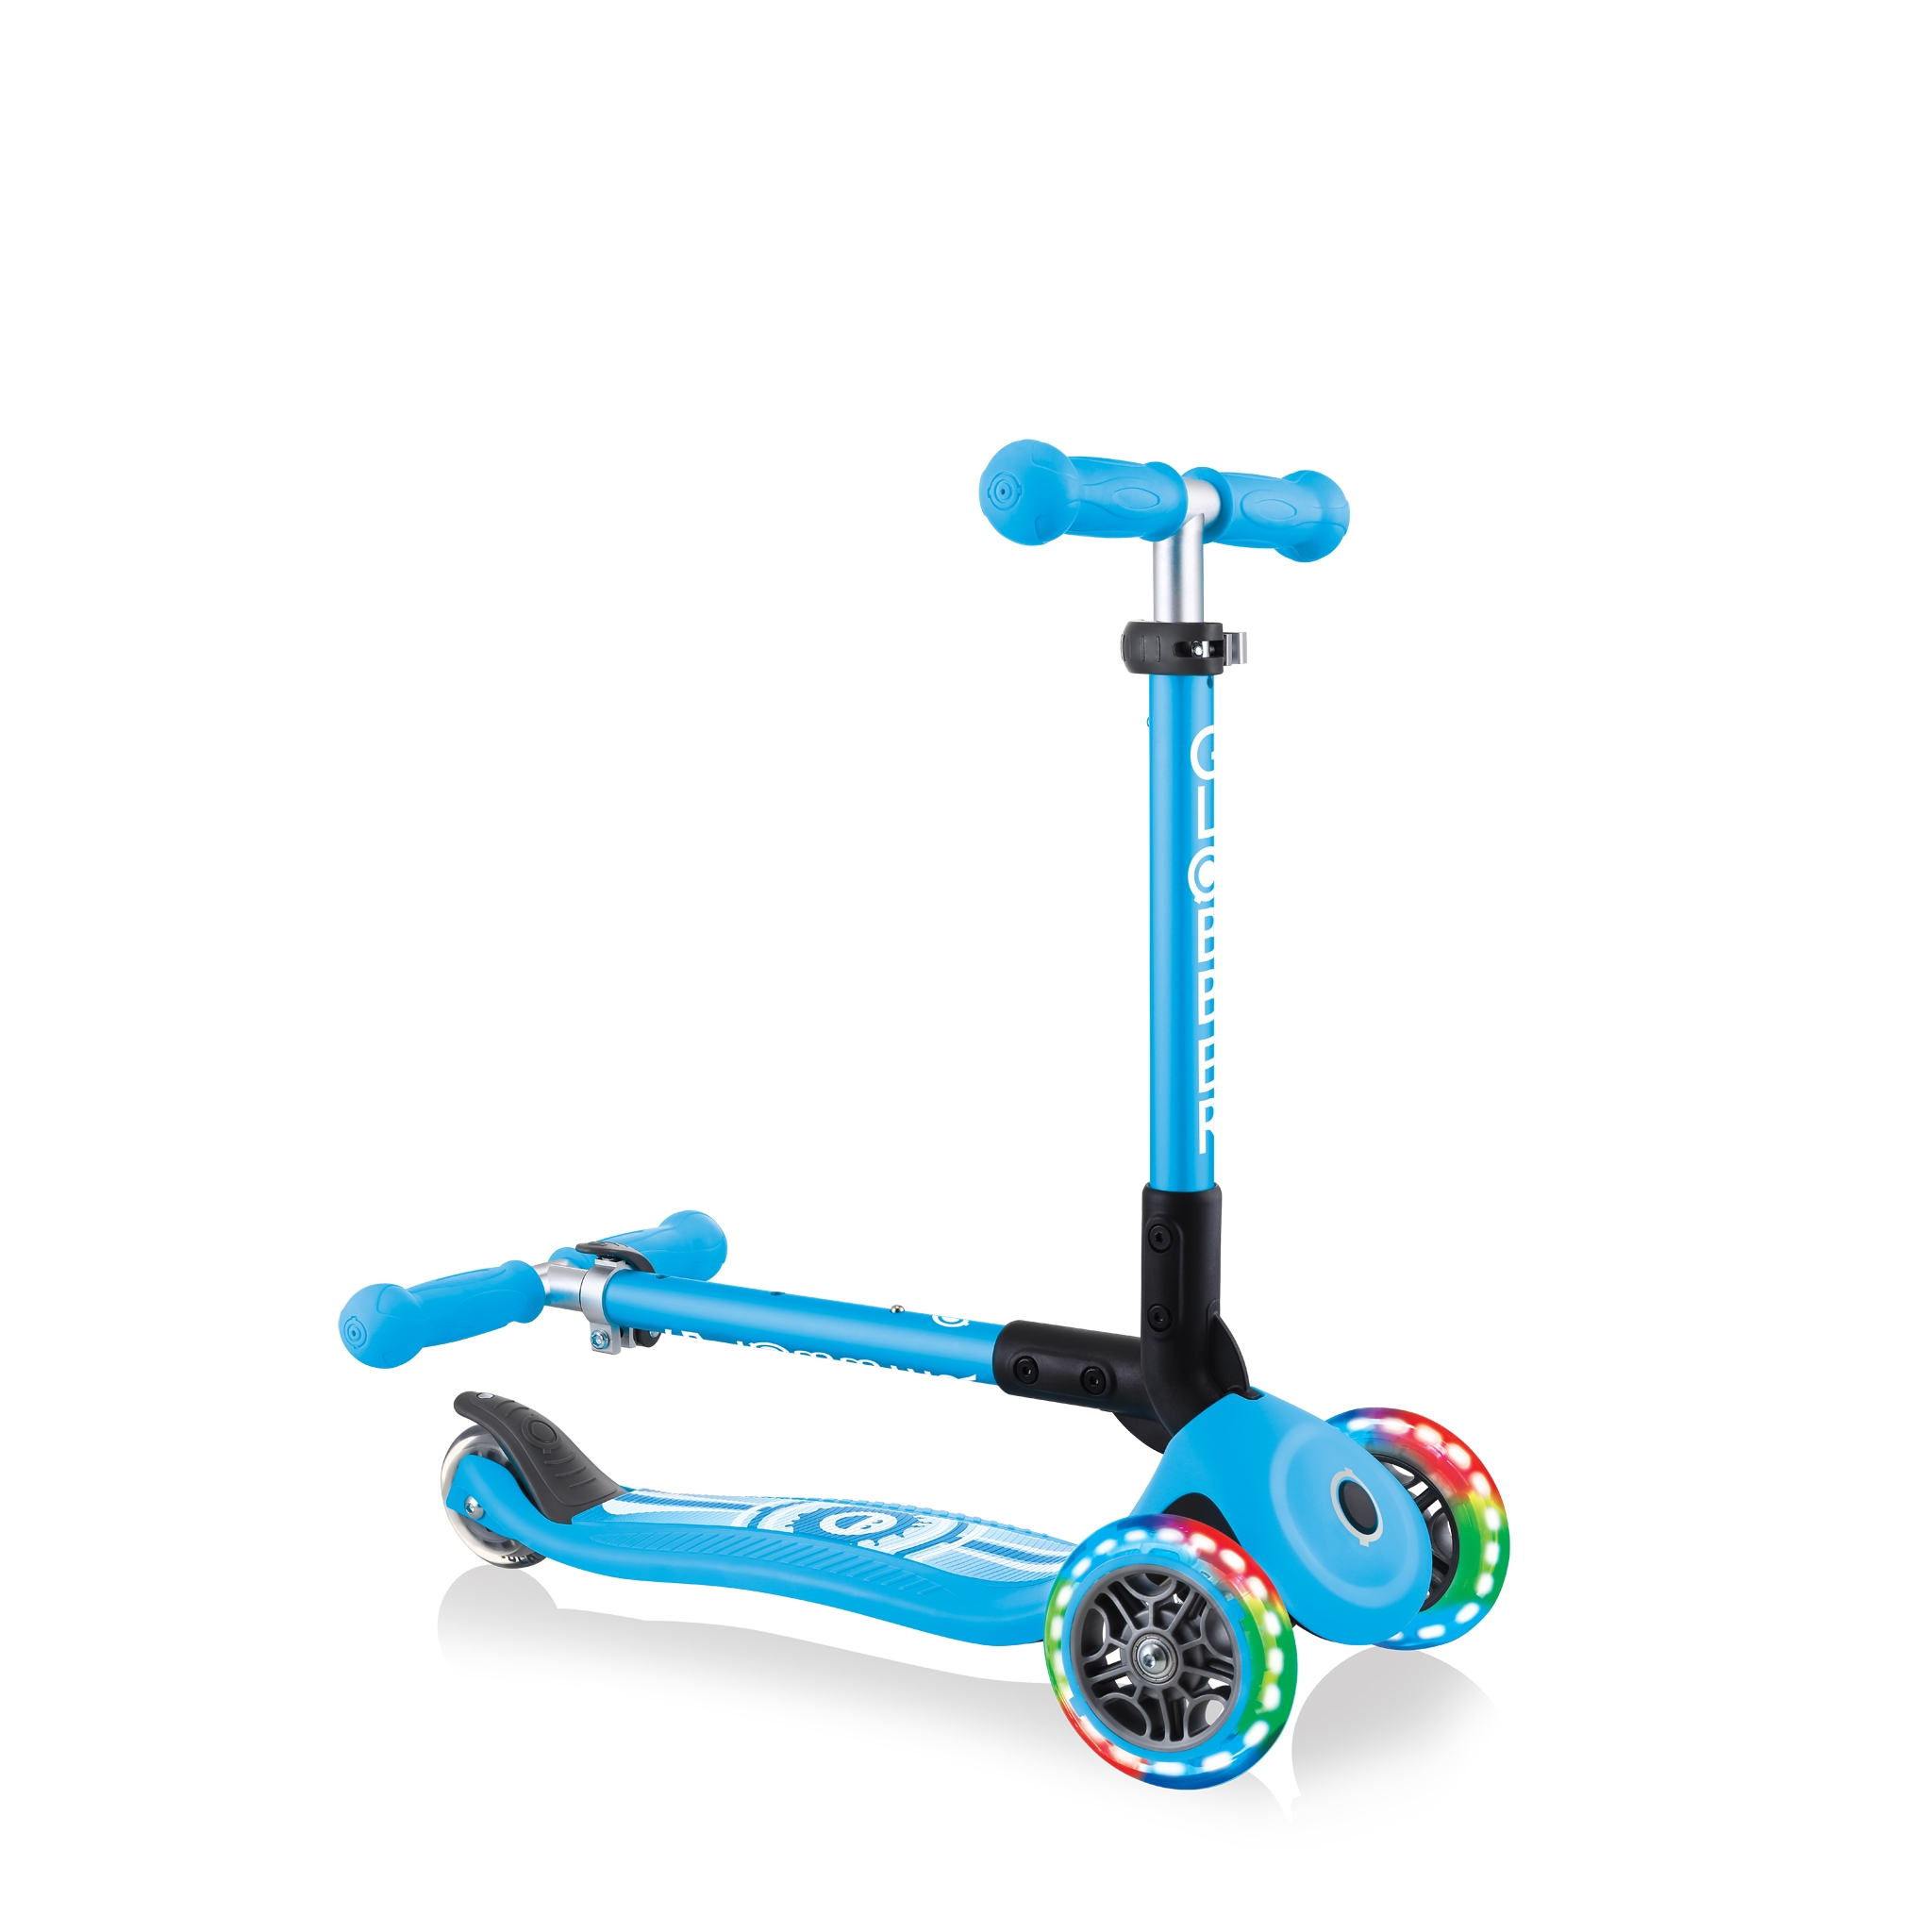 Foldable-3-wheel-scooter-for-toddlers-Globber-JUNIOR-FOLDABLE-FANTASY-LIGHTS